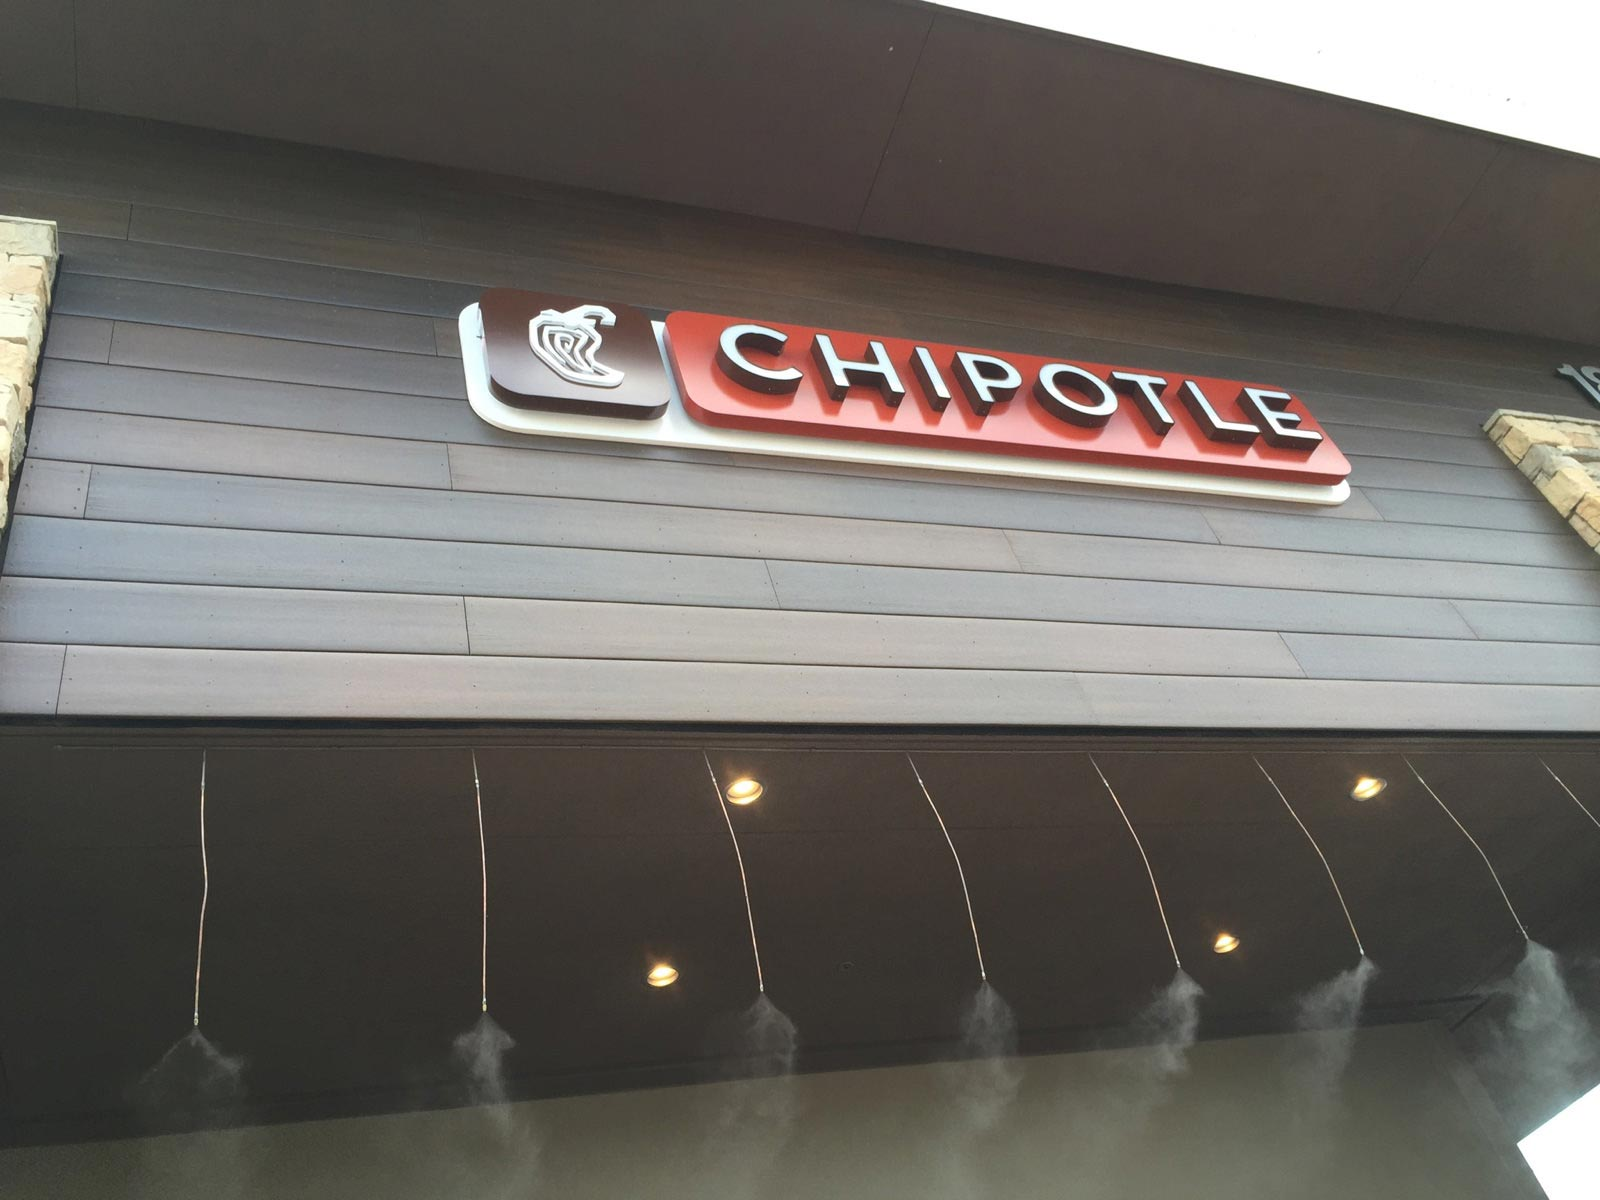 Chipotle sign and MoistureShield